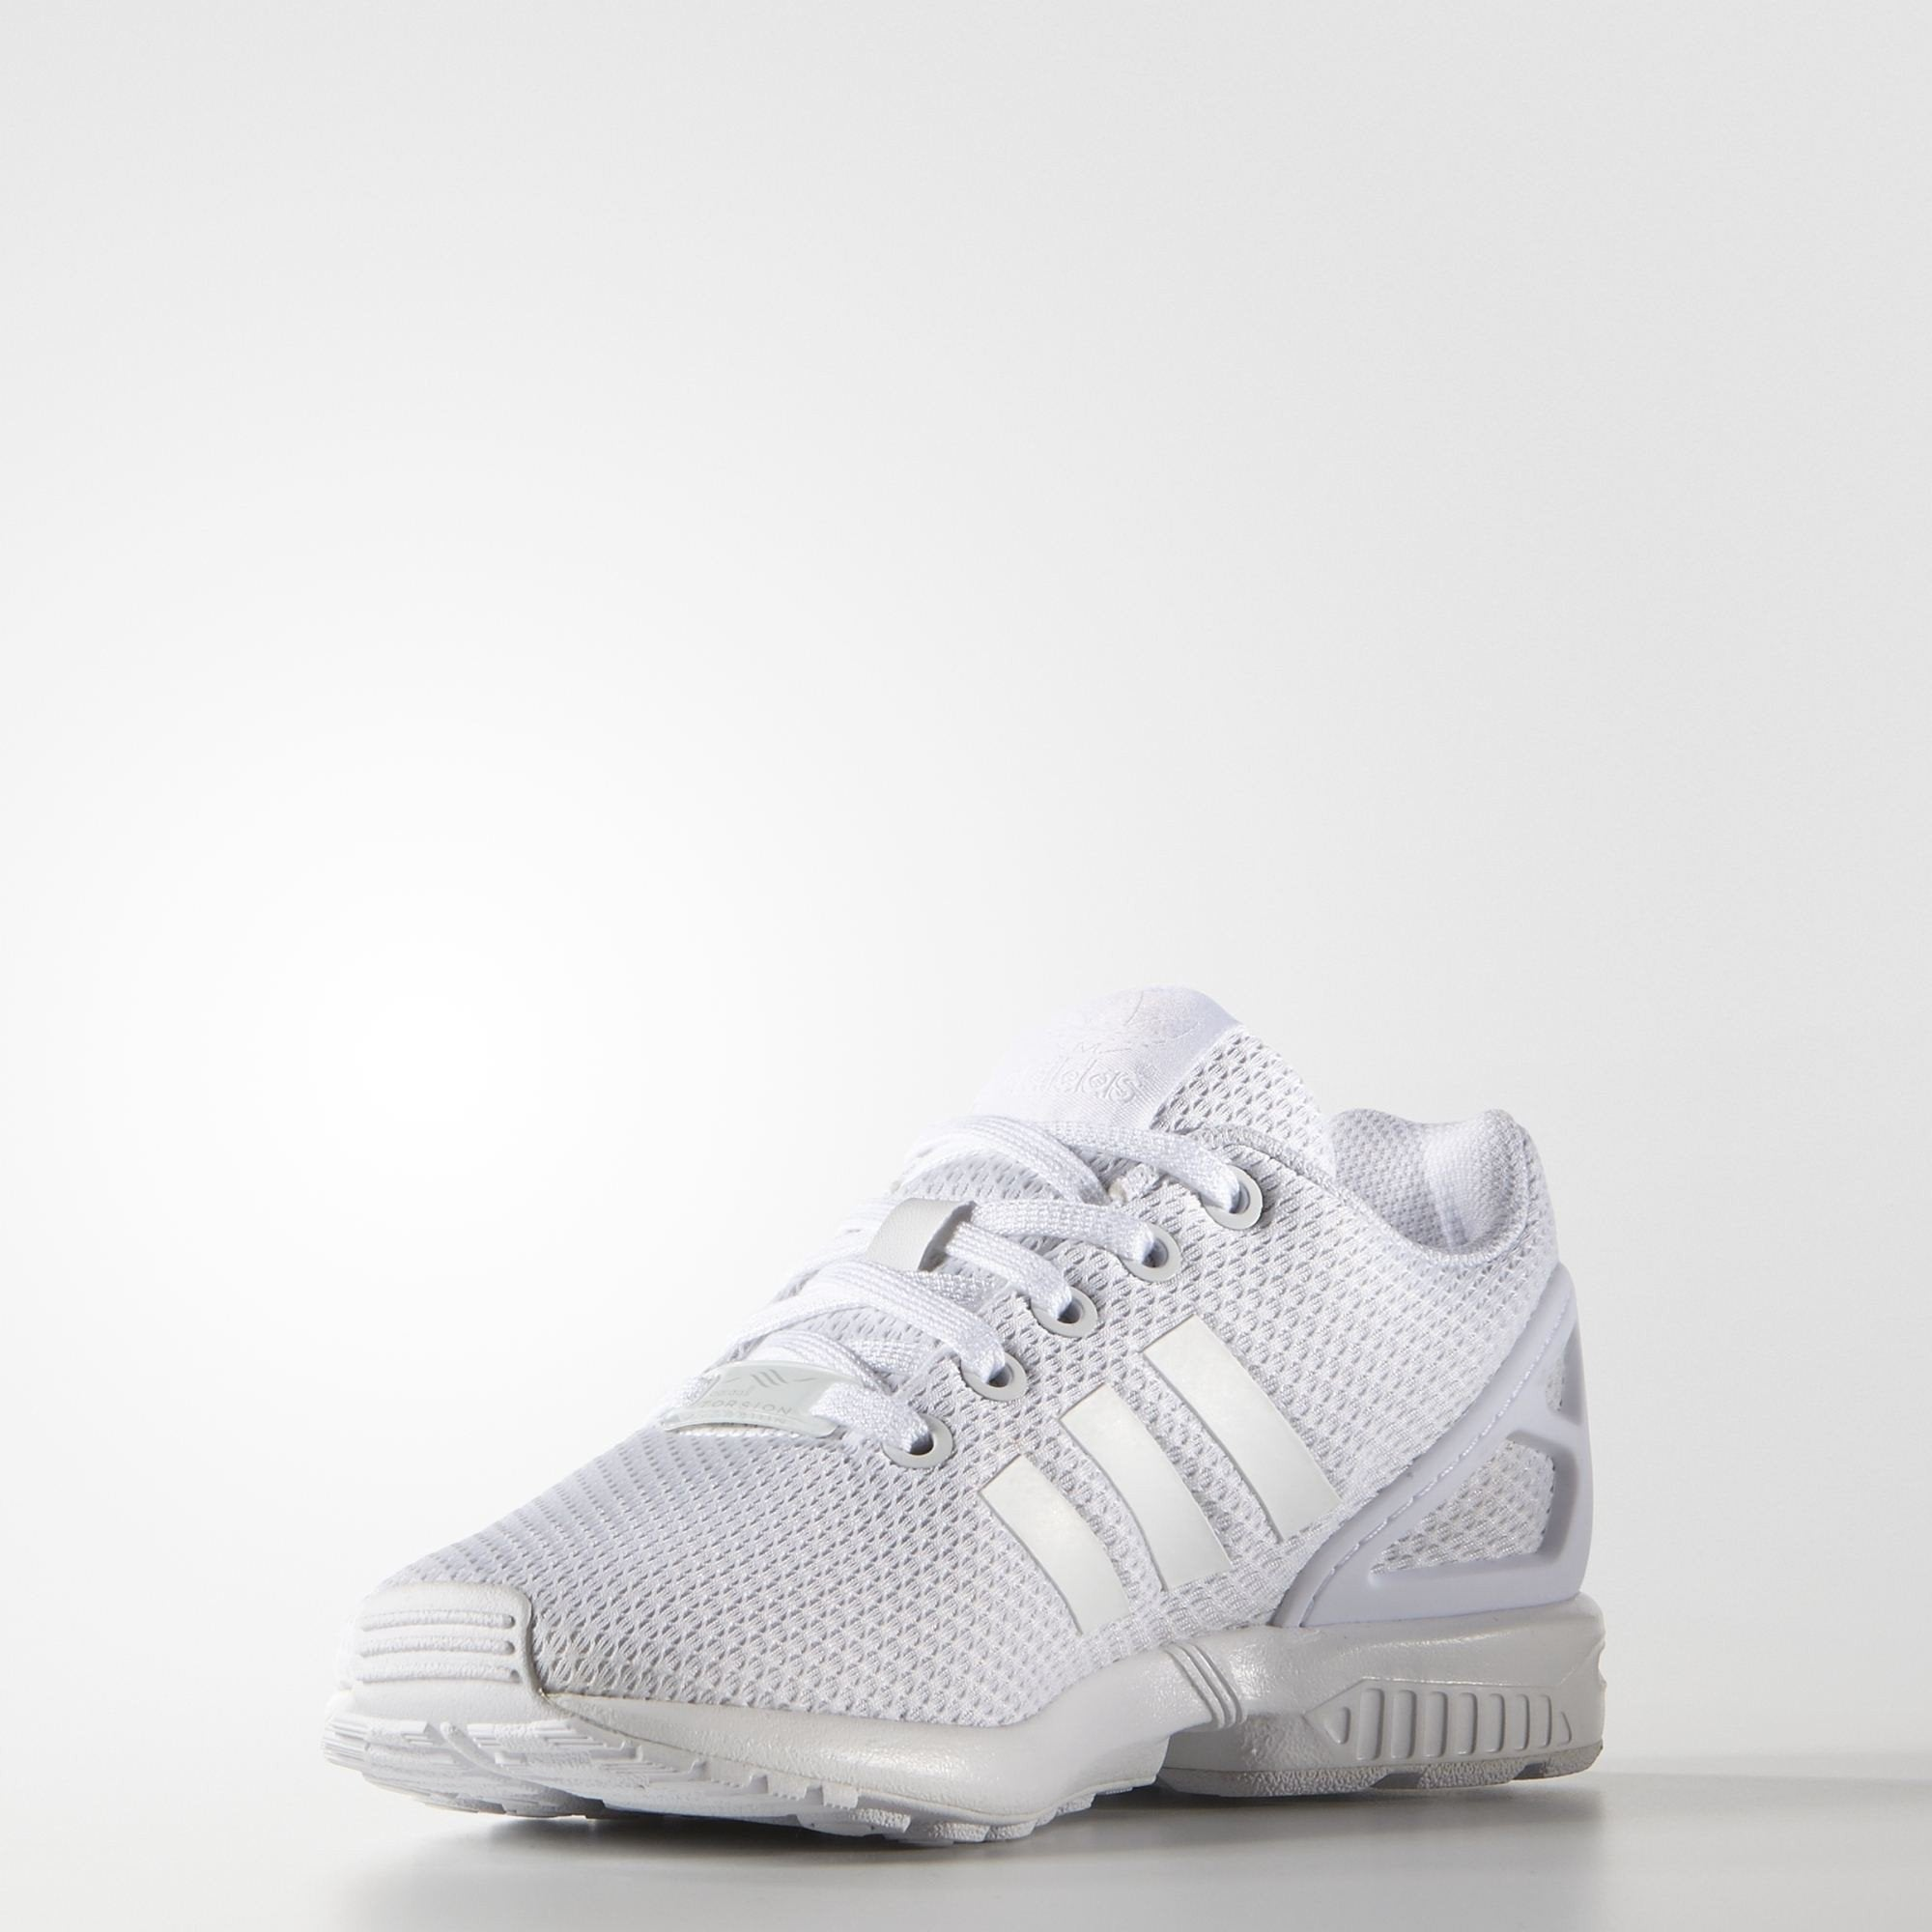 5d32b05d563 adidas ZX Flux J White Shoes – Branded Feet